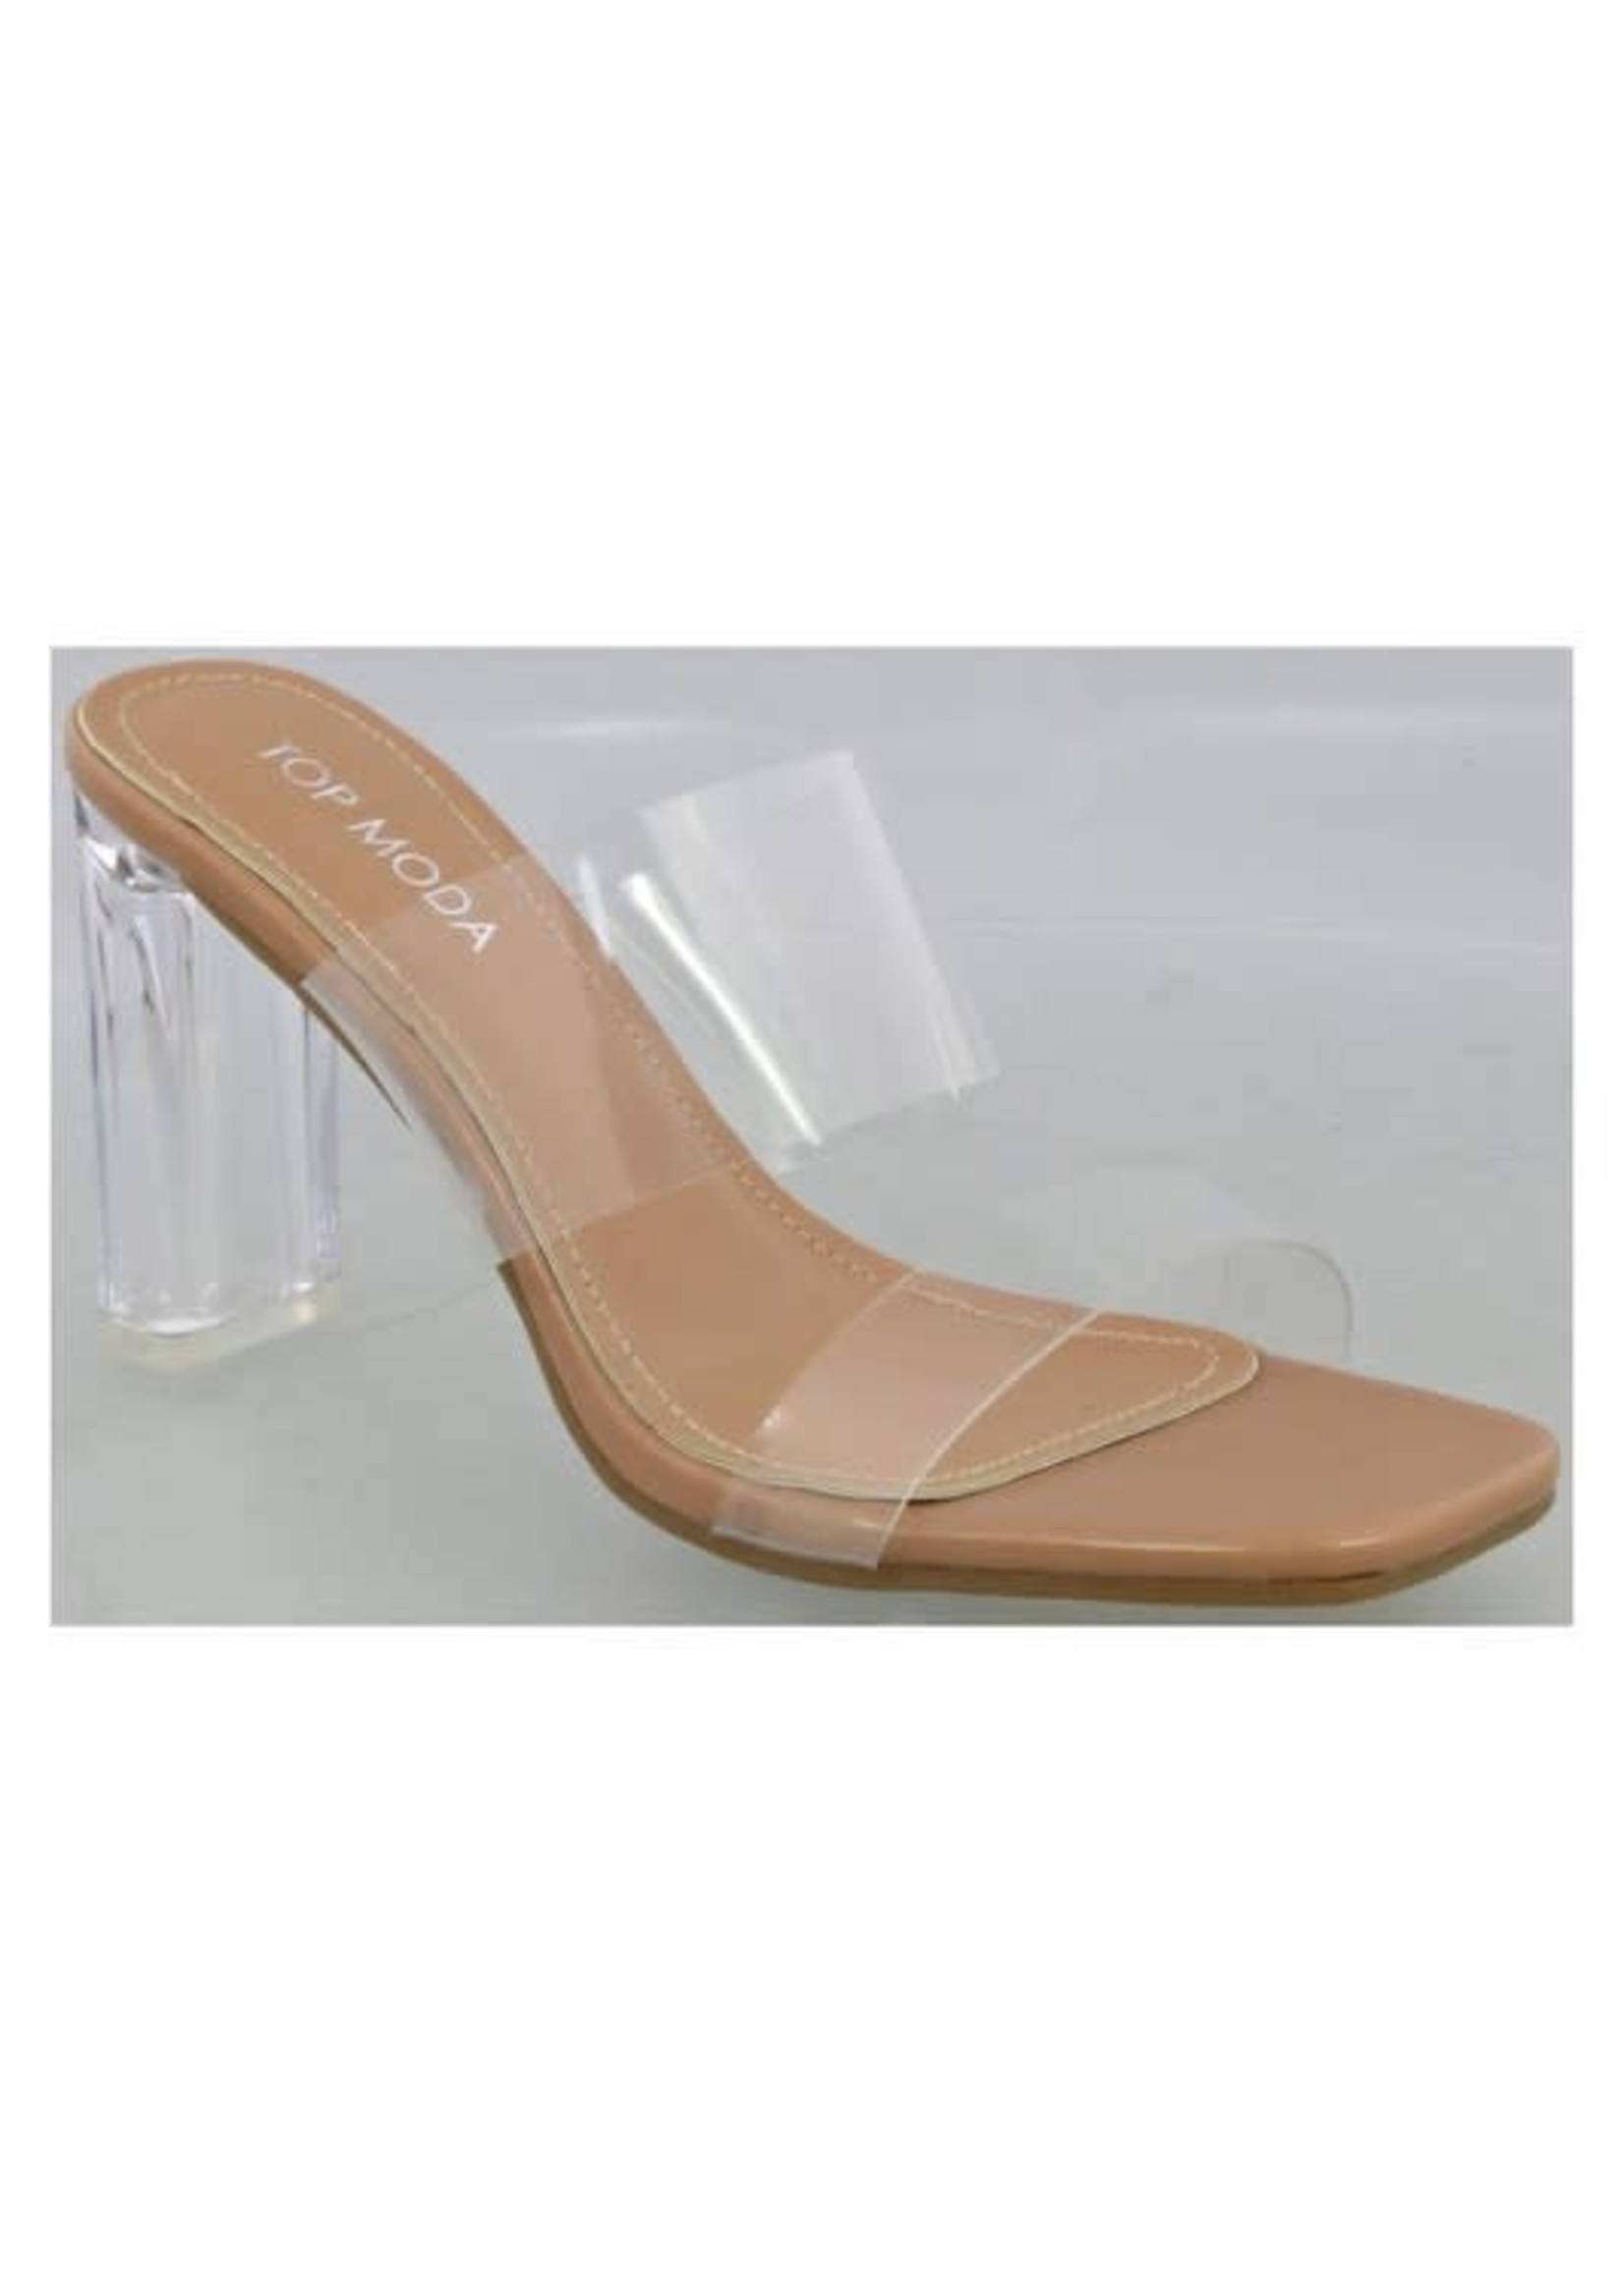 Can See Clearly Party Heel